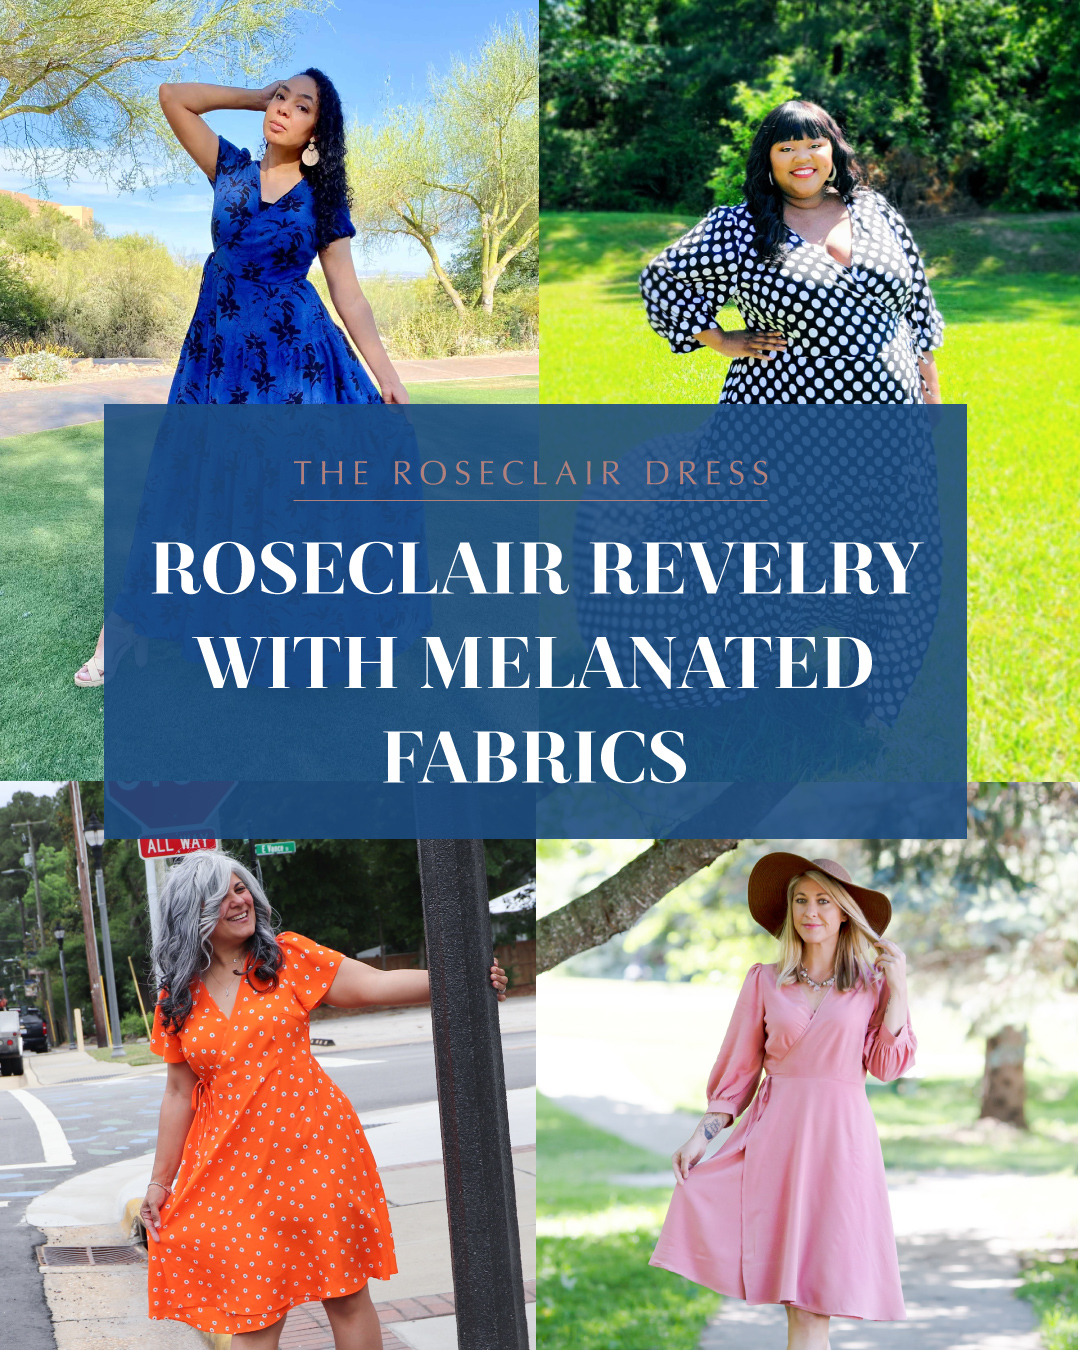 The Roseclair Dress: Roseclair Revelry with Melanated Fabrics